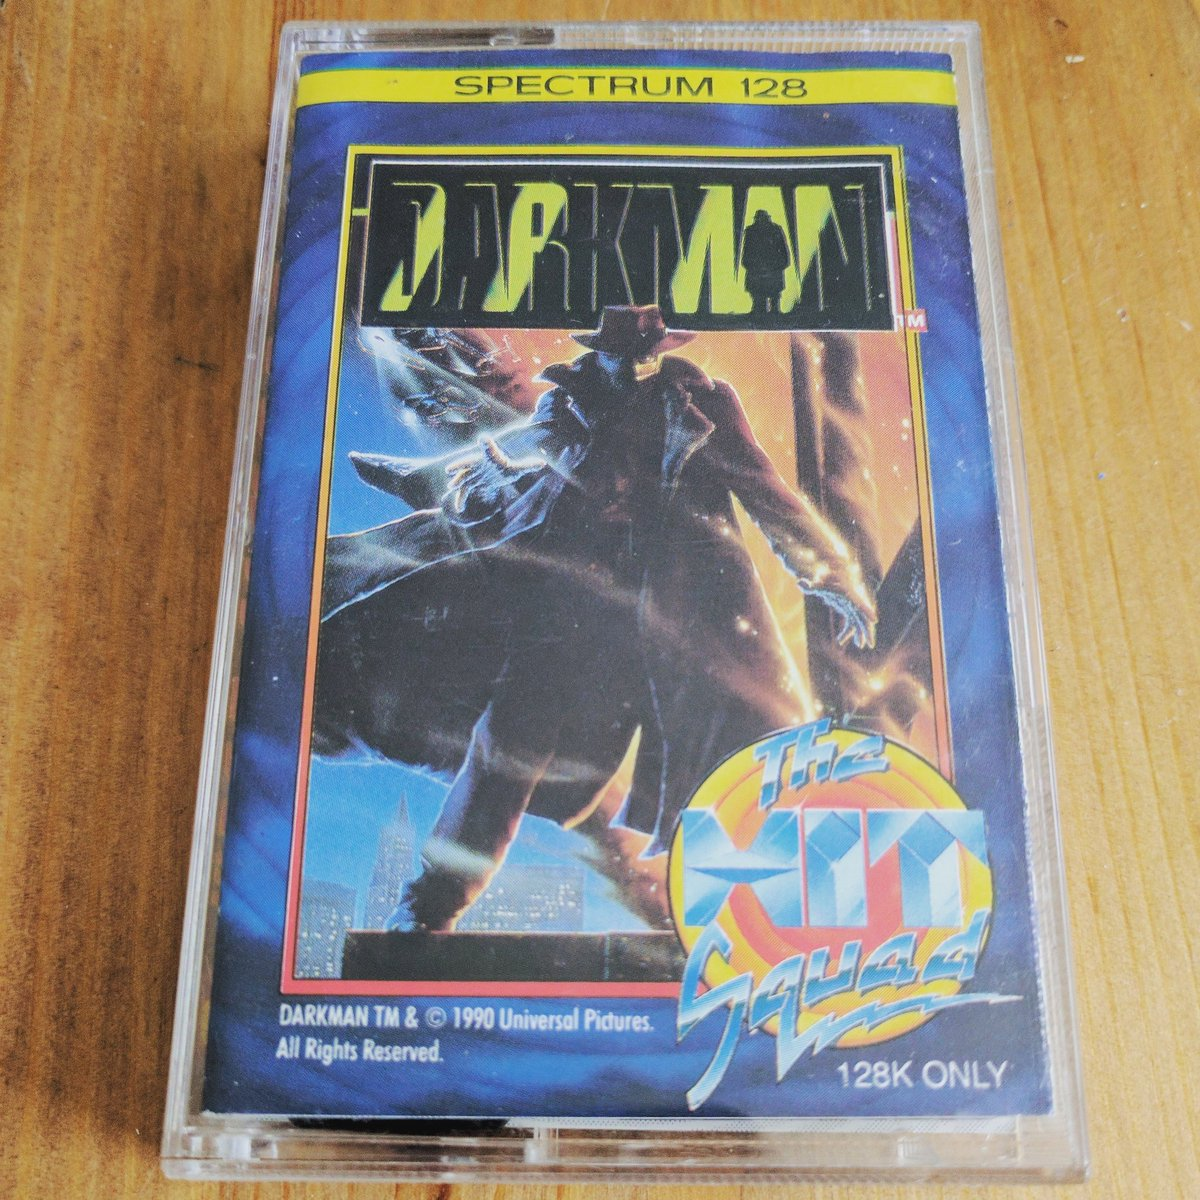 Only just bagged me one of the rarest #zx #spectrum #HitSquad games. My hit squad collection is now % complete. #retrogaming<br>http://pic.twitter.com/Rg6XV3ZXKV